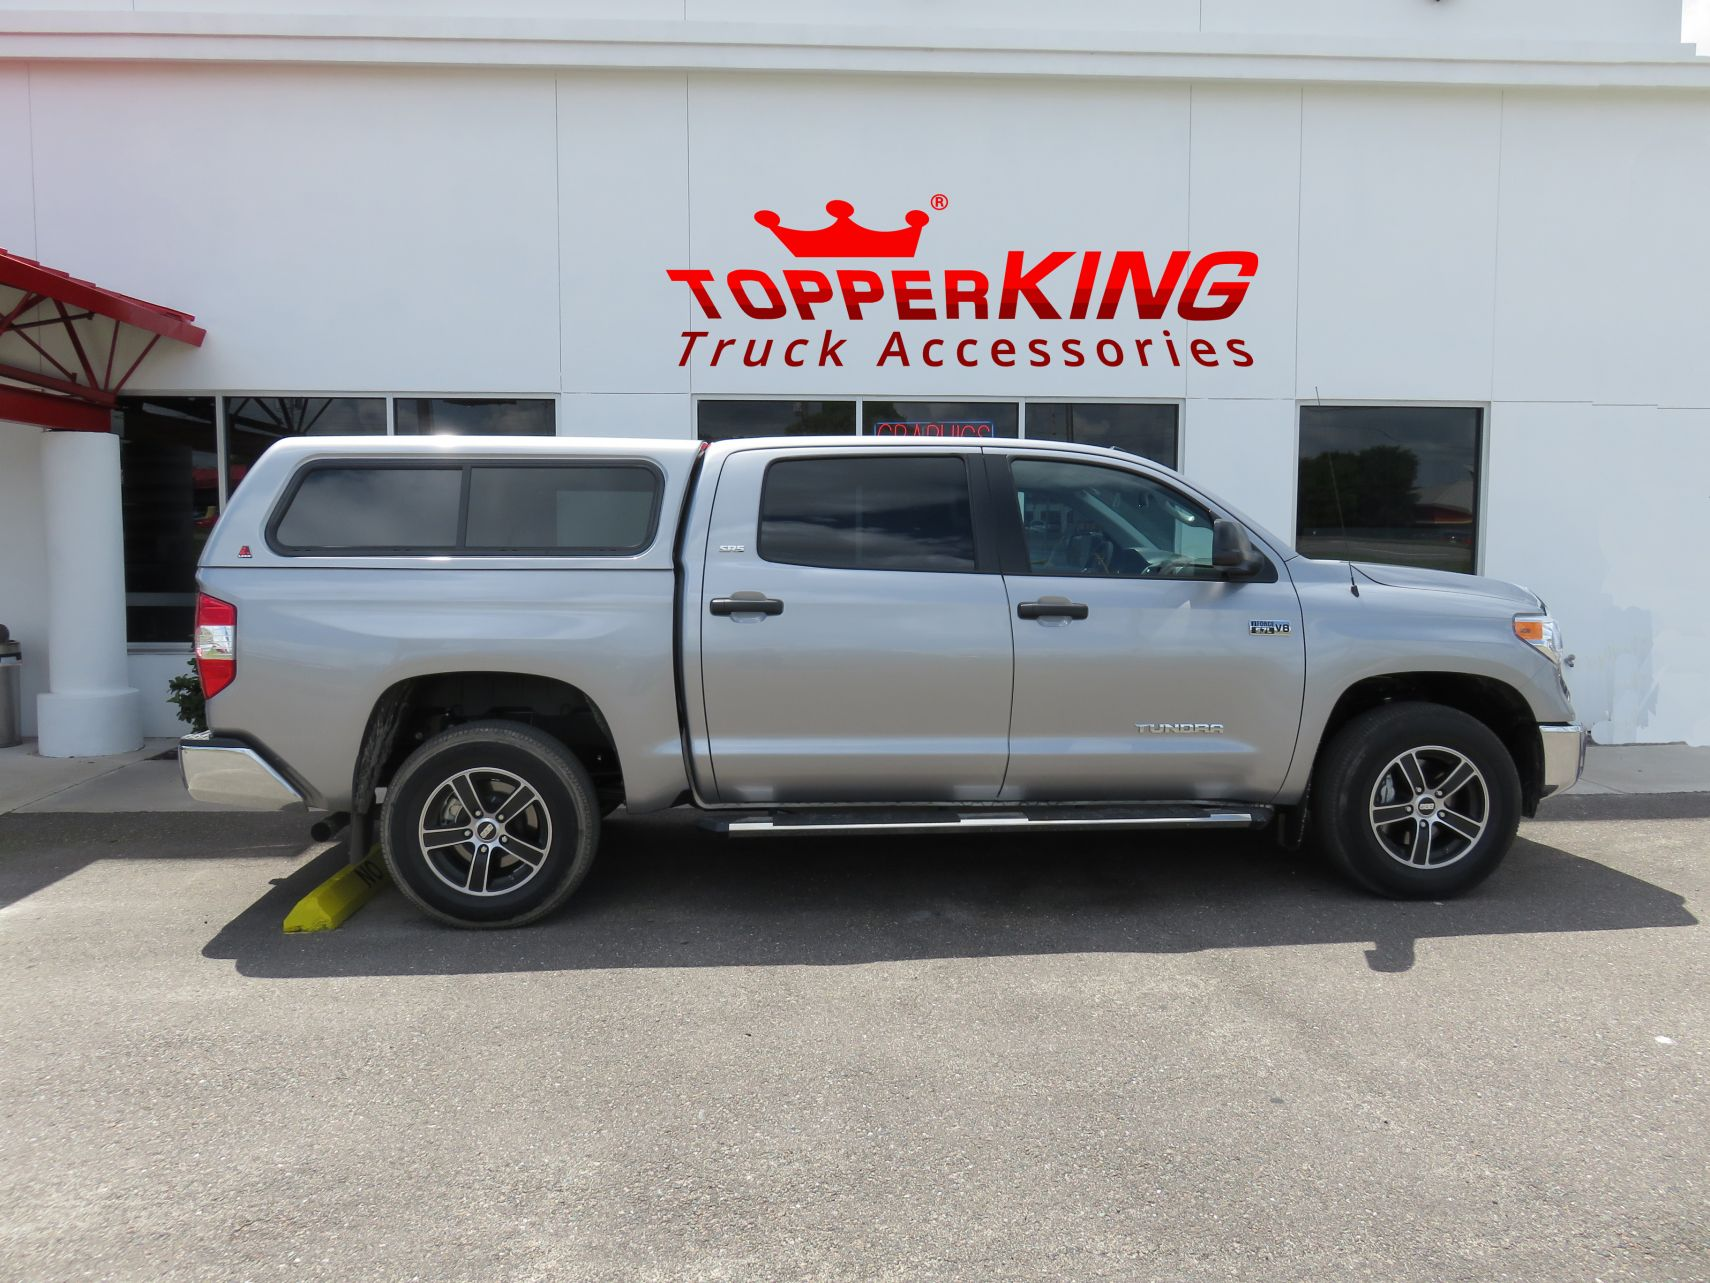 Toyota TundraLEER 100XRfiberglass topper anda custom hitch by TopperKING in Brandon, FL 813-689-2449 Call today to start on your truck!